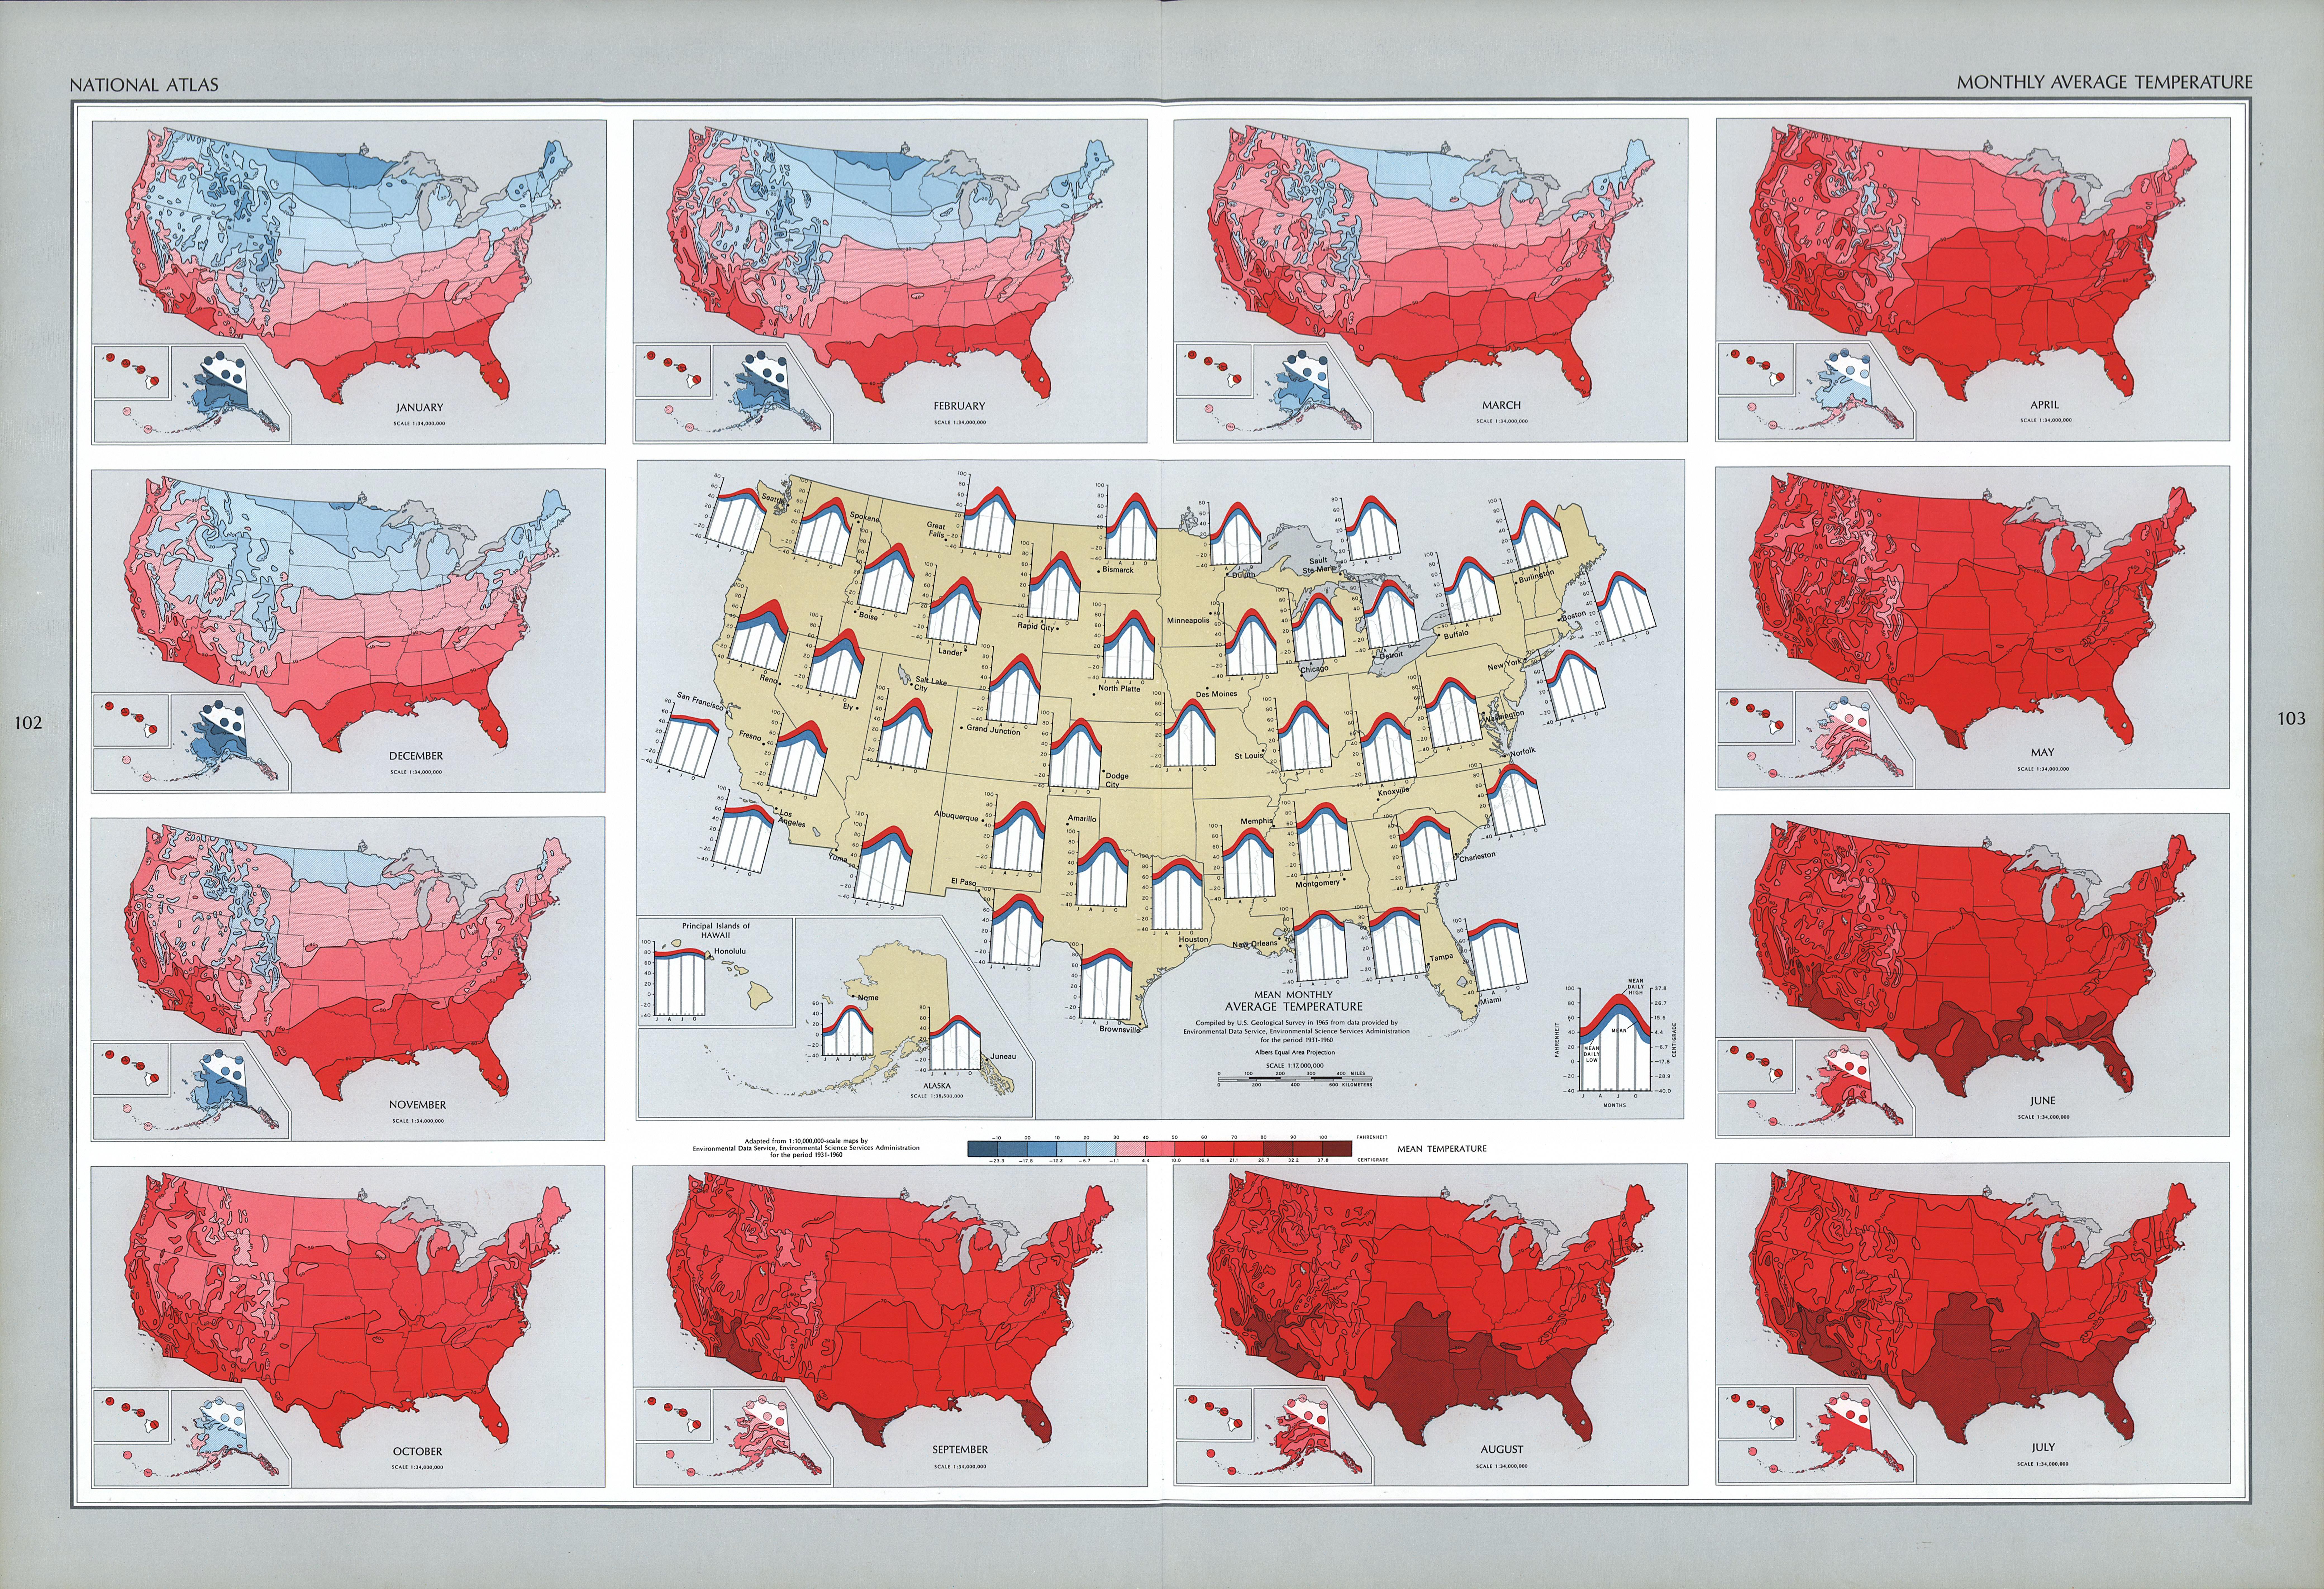 Maps of United States Monthly Average Temperature Map - mapa ...